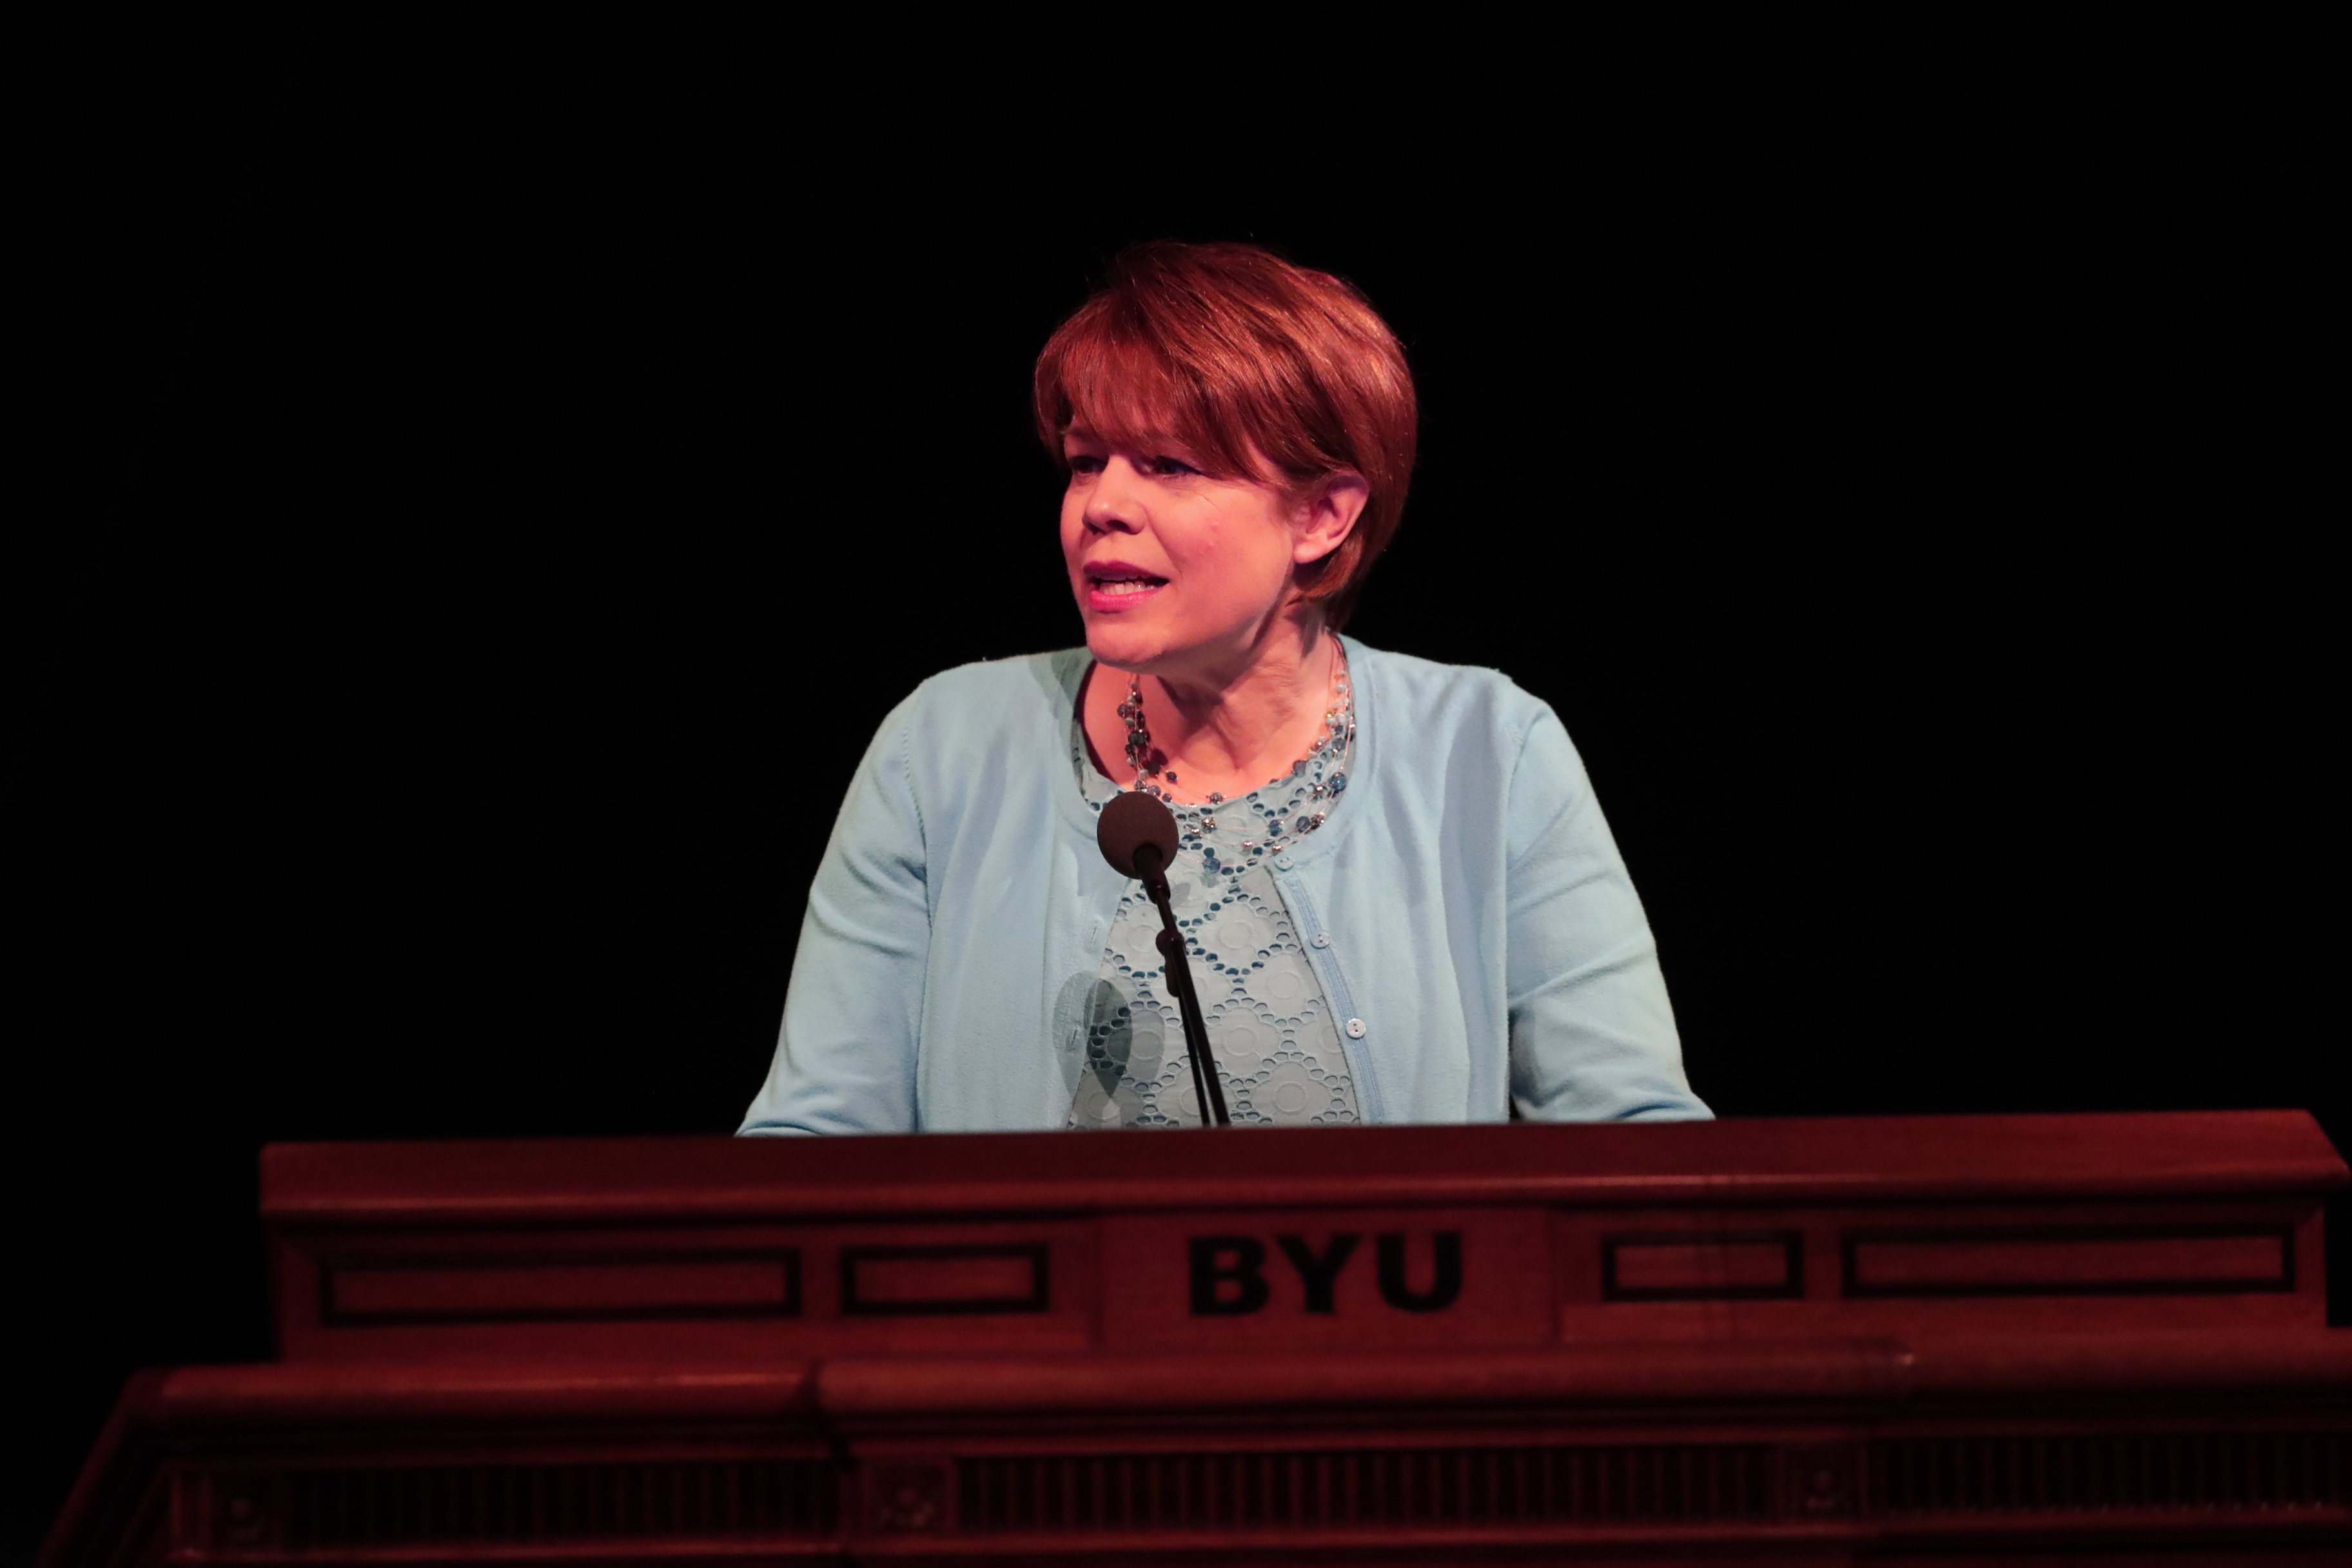 Sister Sharon Eubank, first counselor in the Relief Society generl presidency, speaks during a session of the BYU Women's Conference at the Marriott Center on May 2, 2019.